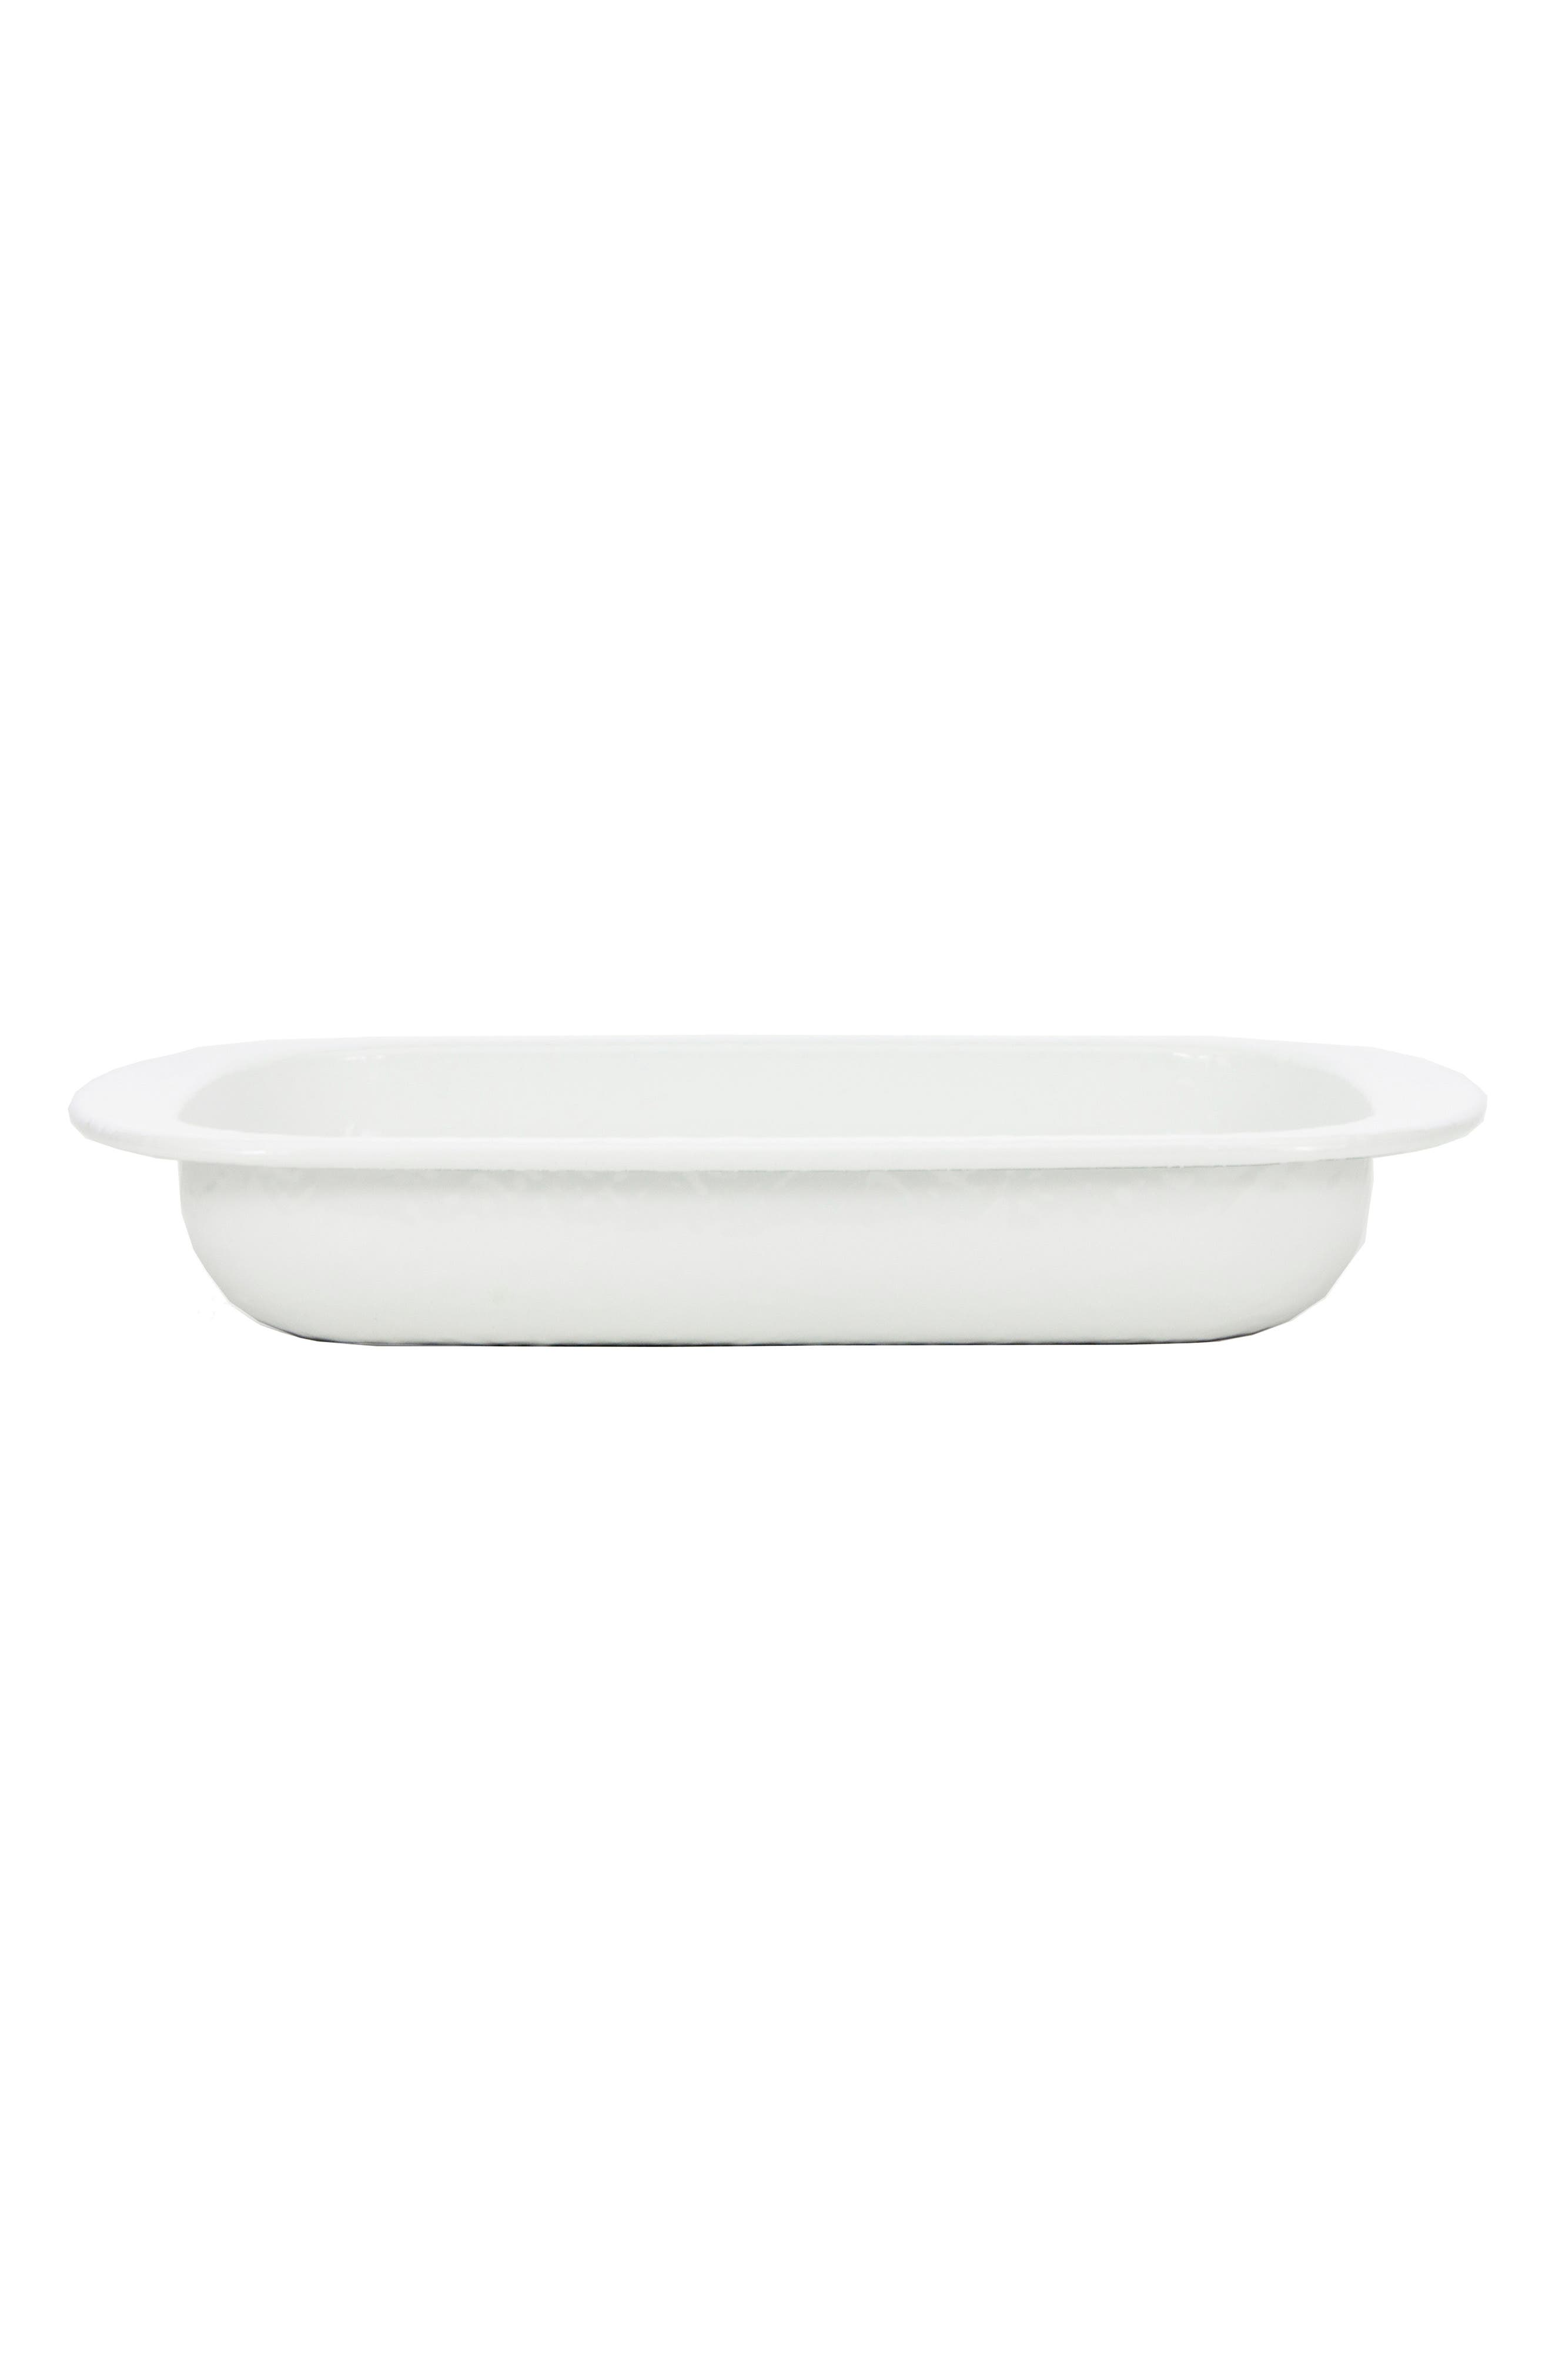 Baking Pan,                         Main,                         color, SOLID WHITE